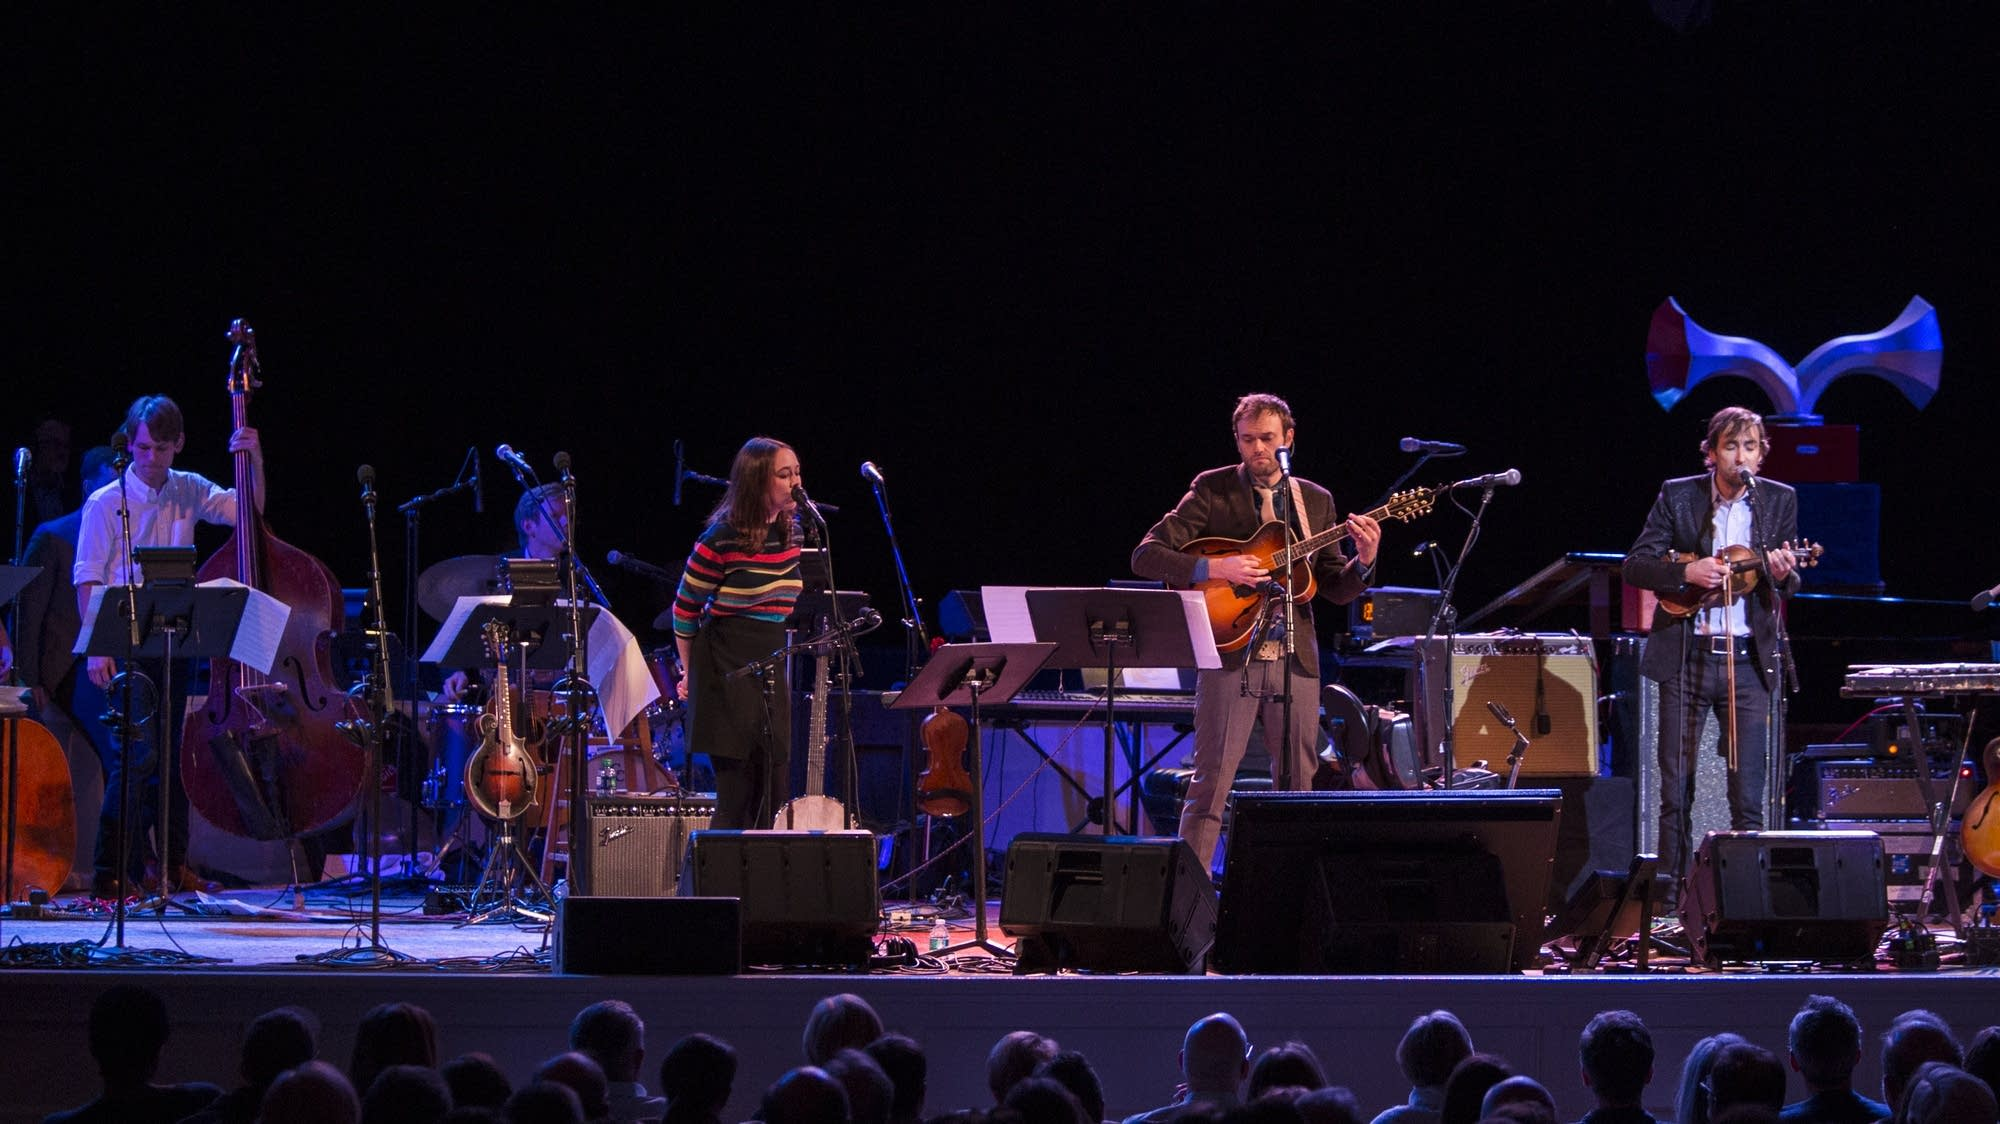 Andrew Bird with Chris Thile and Sarah Jarosz